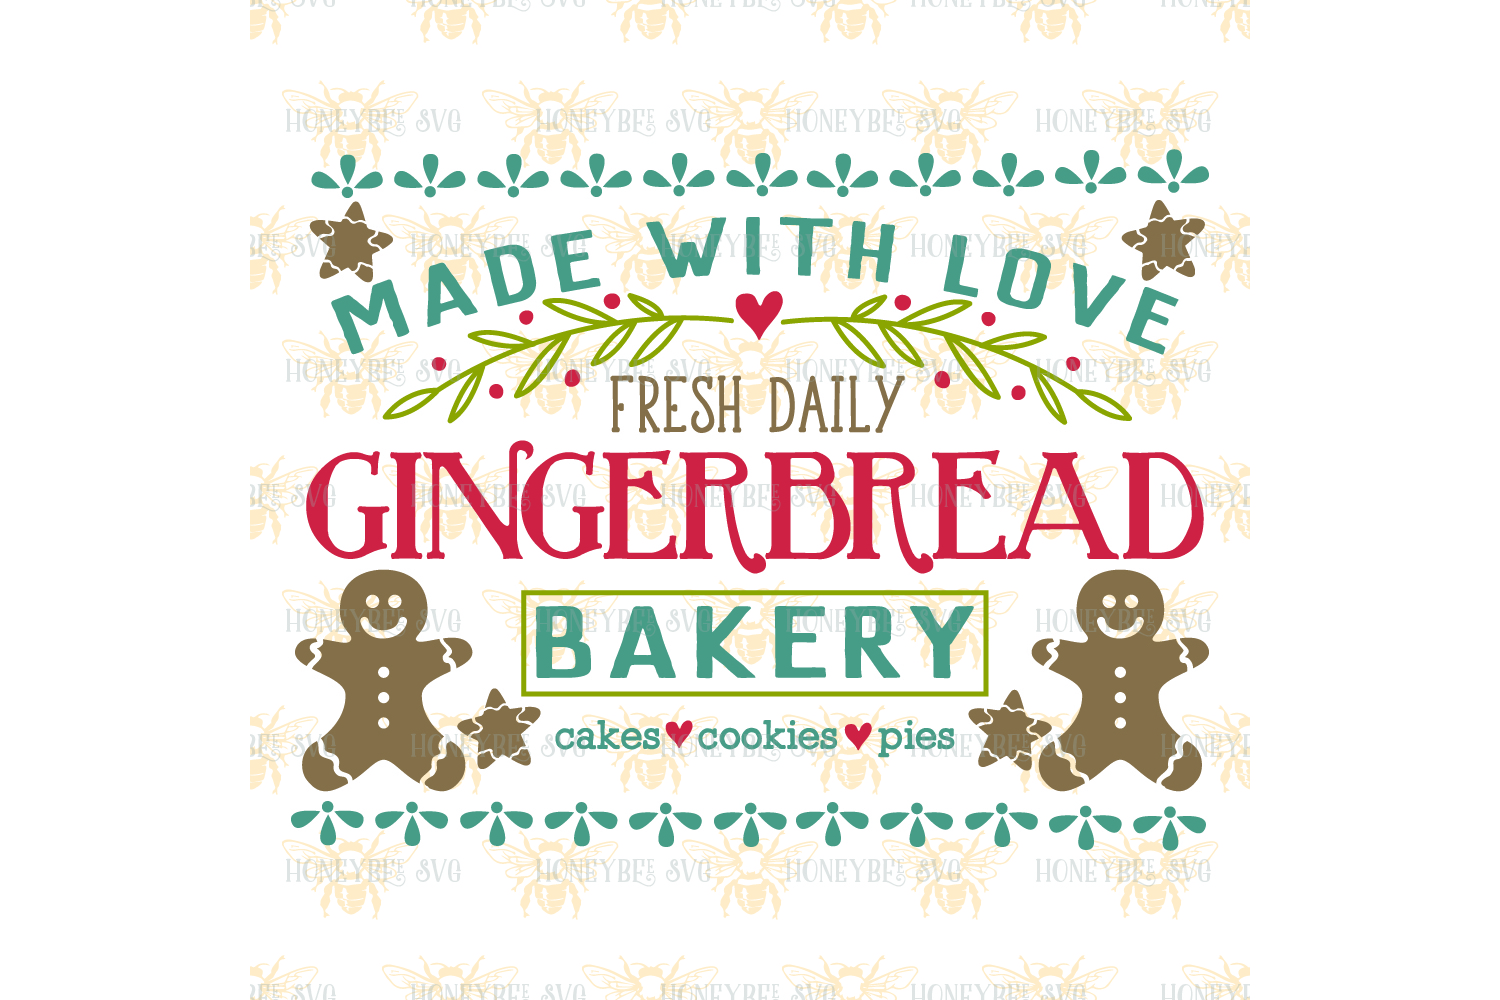 Gingerbread Bakery svg example image 2